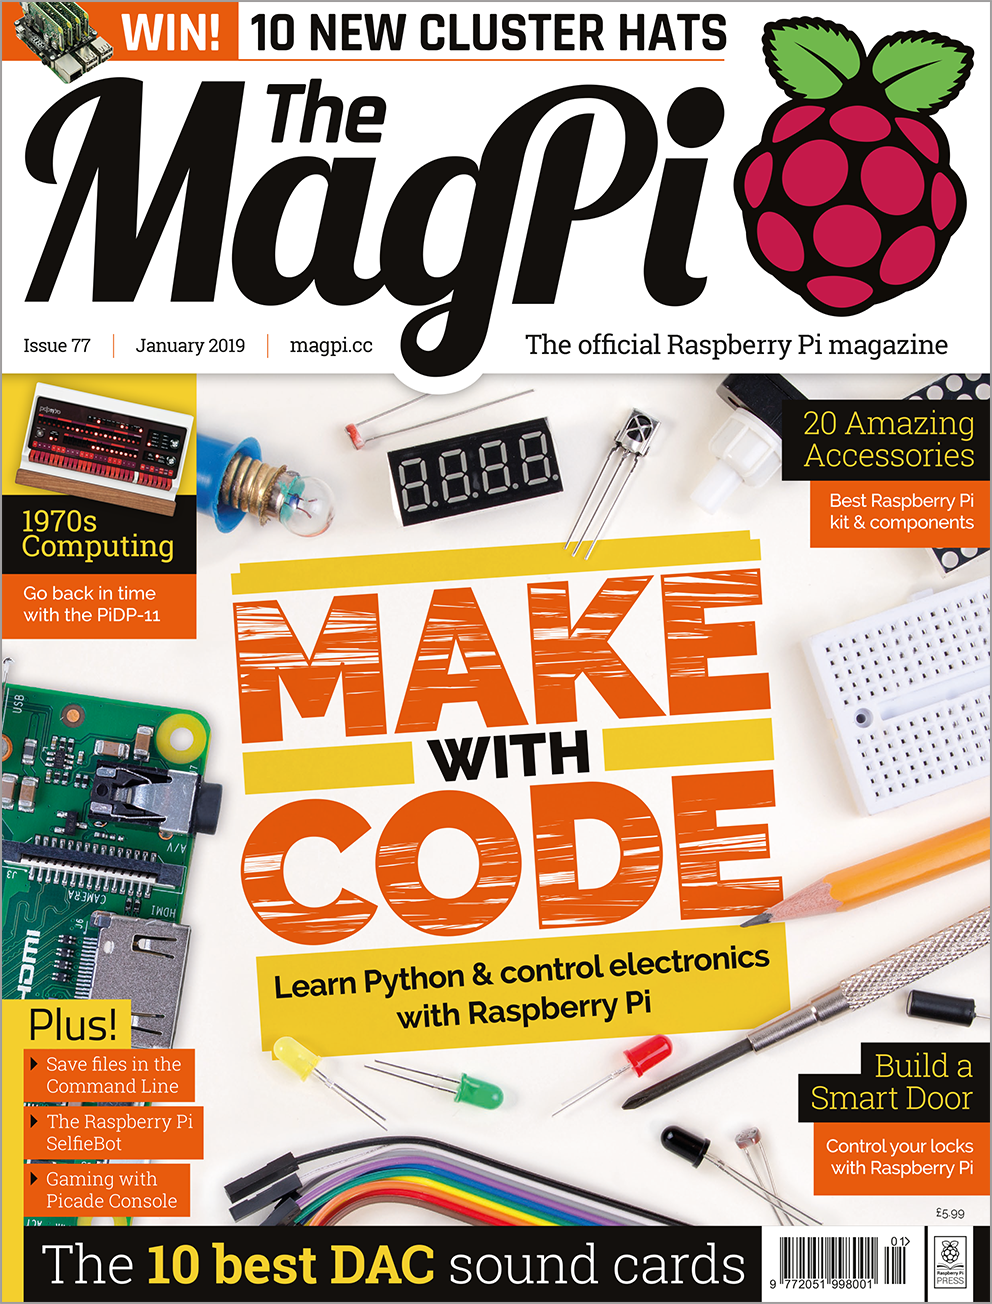 The Magpi Magazine Official Raspberry Pi Magazinethe Ultimate Monthly Circuit Building Kit Latest Release